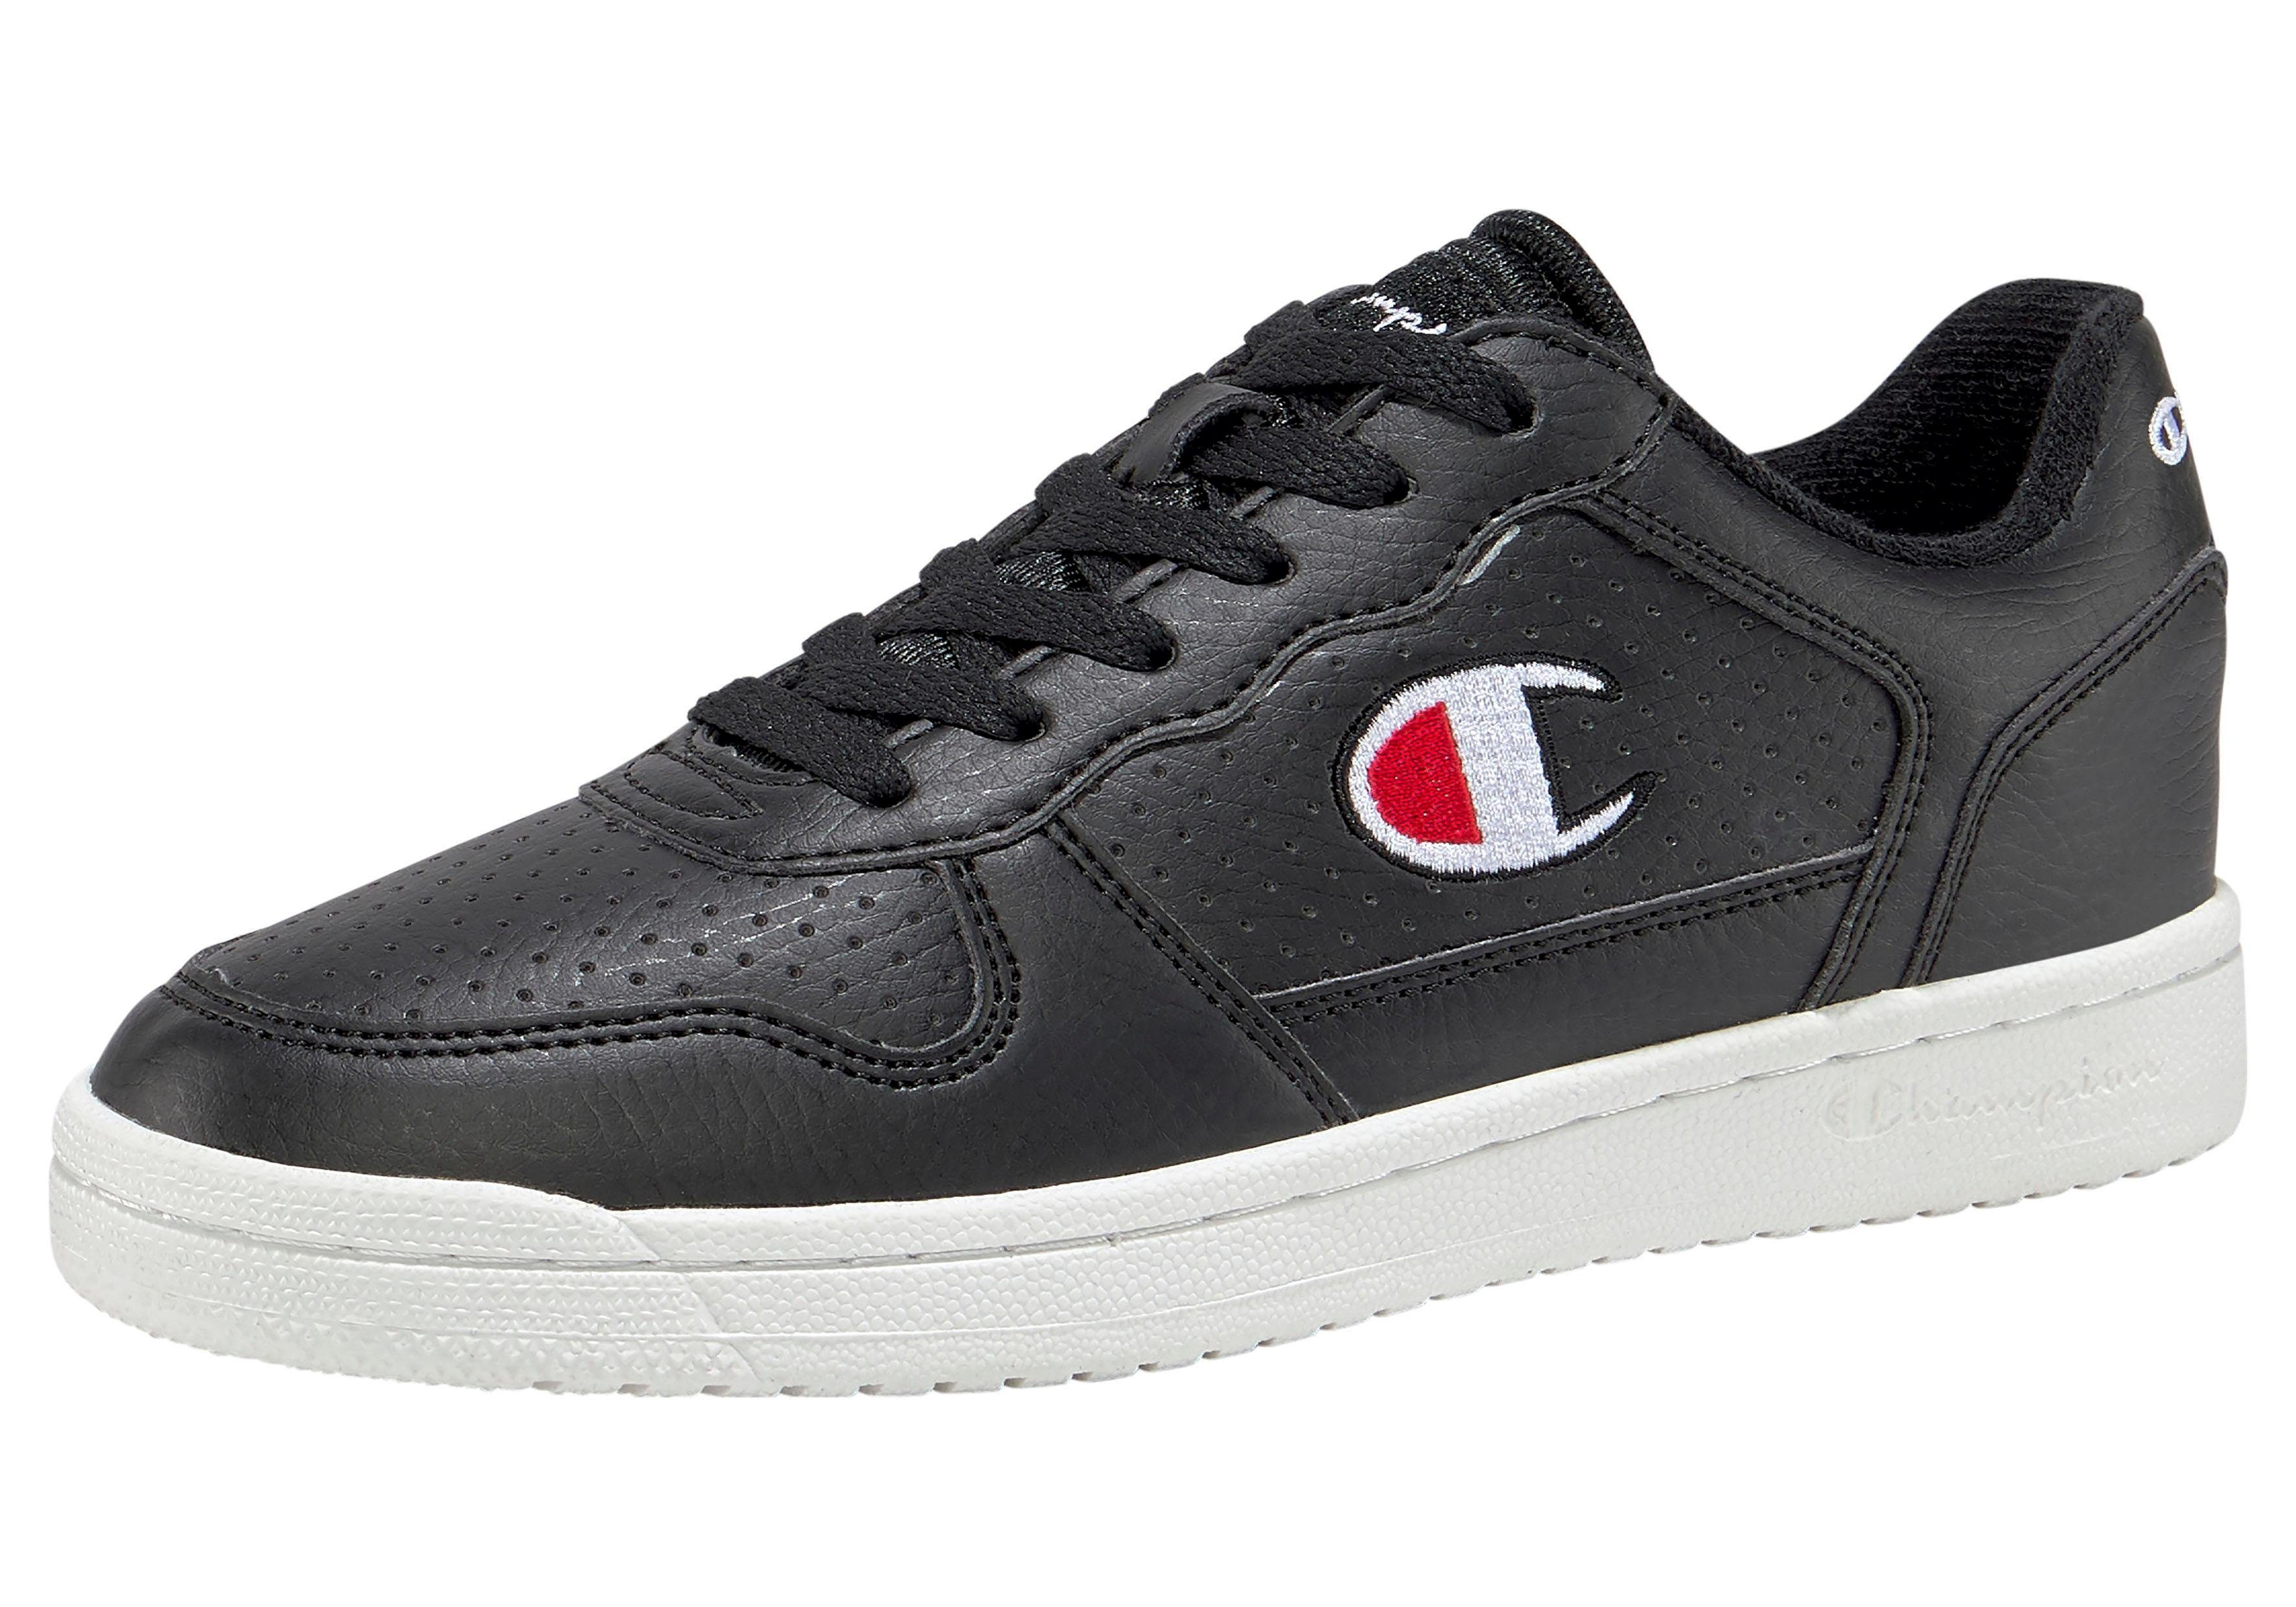 Champion »CHICAGO LOW« Sneaker, Strapazierfähiges Obermaterial aus Synthetik online kaufen   OTTO